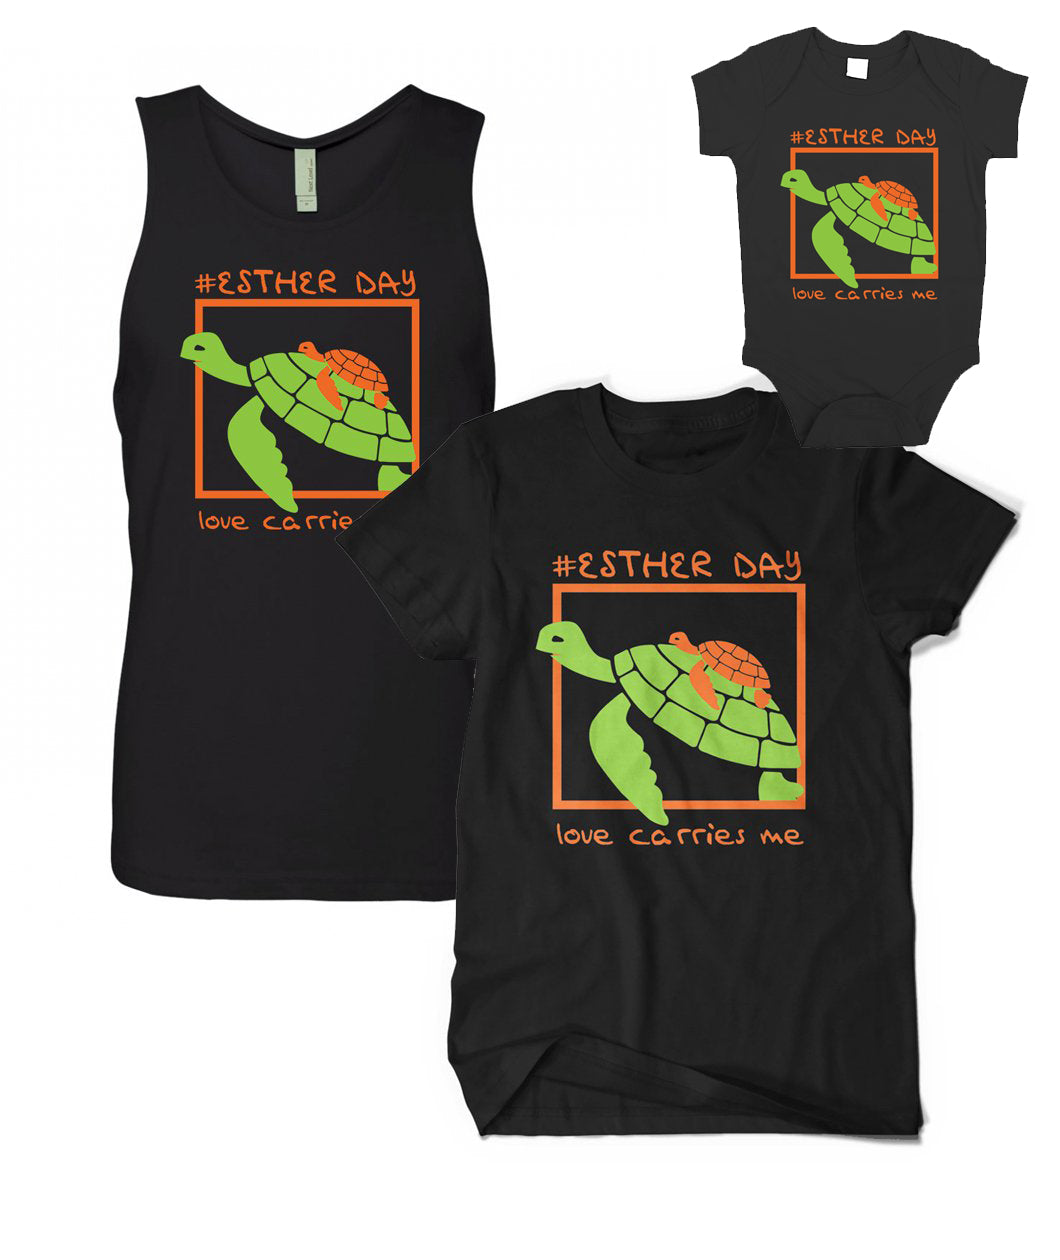 Esther Day Turtle Shirt/Tank + Youth Sizes!